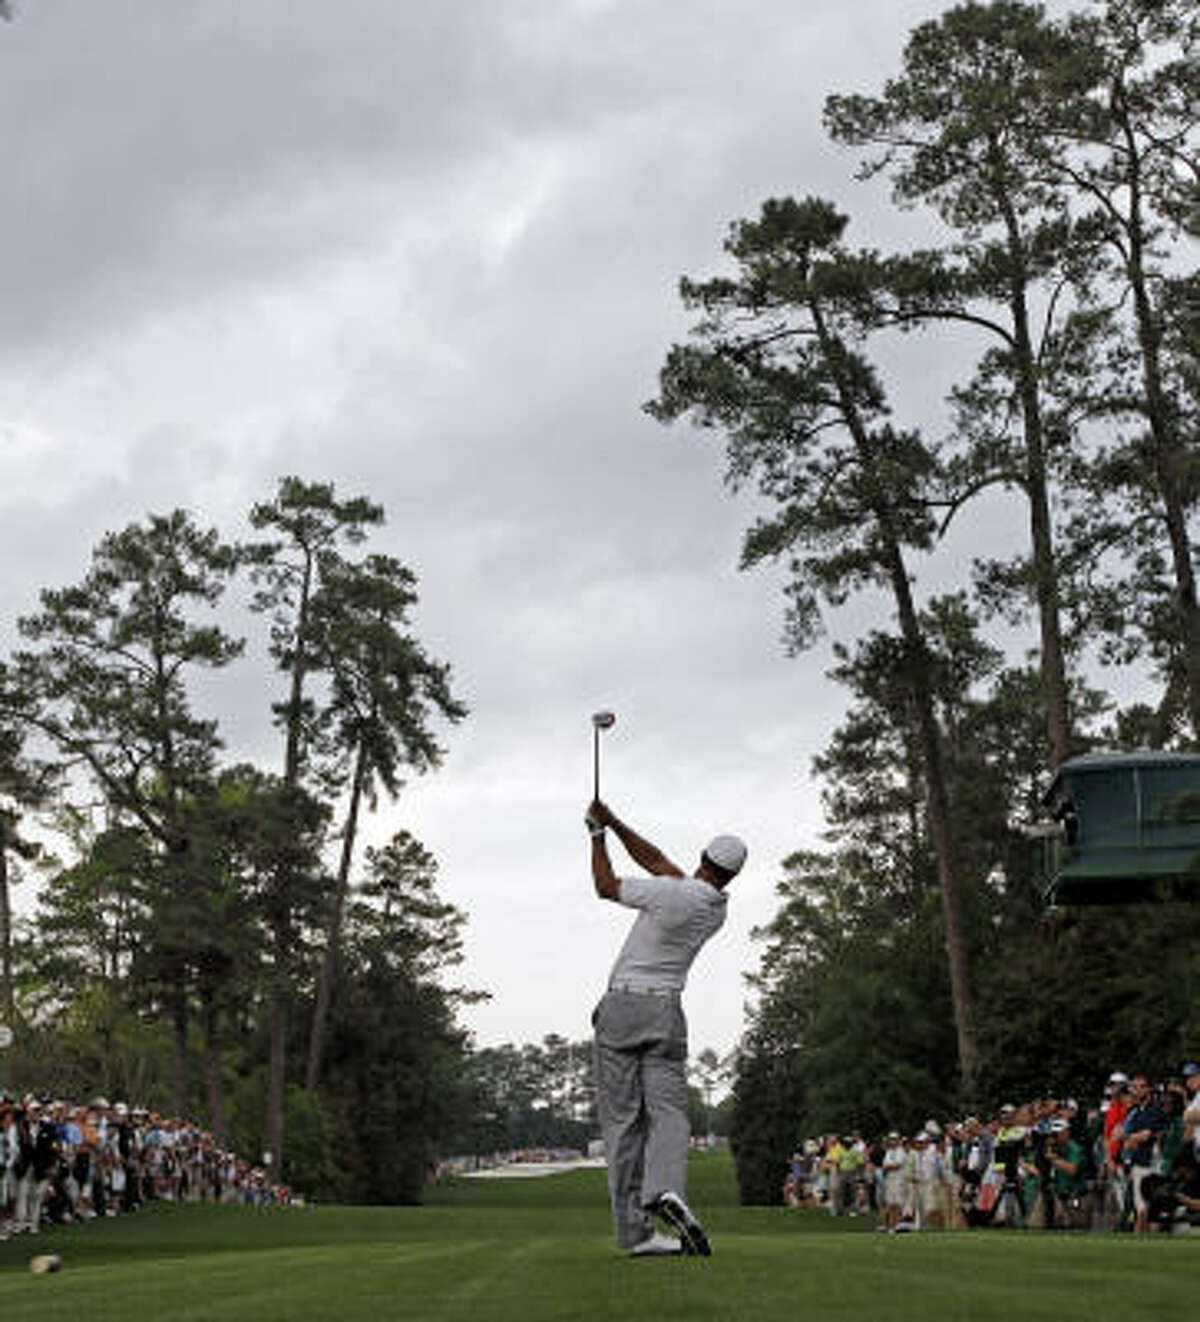 Tiger Woods tees off at the 18th hole during the second round of the Masters golf tournament.